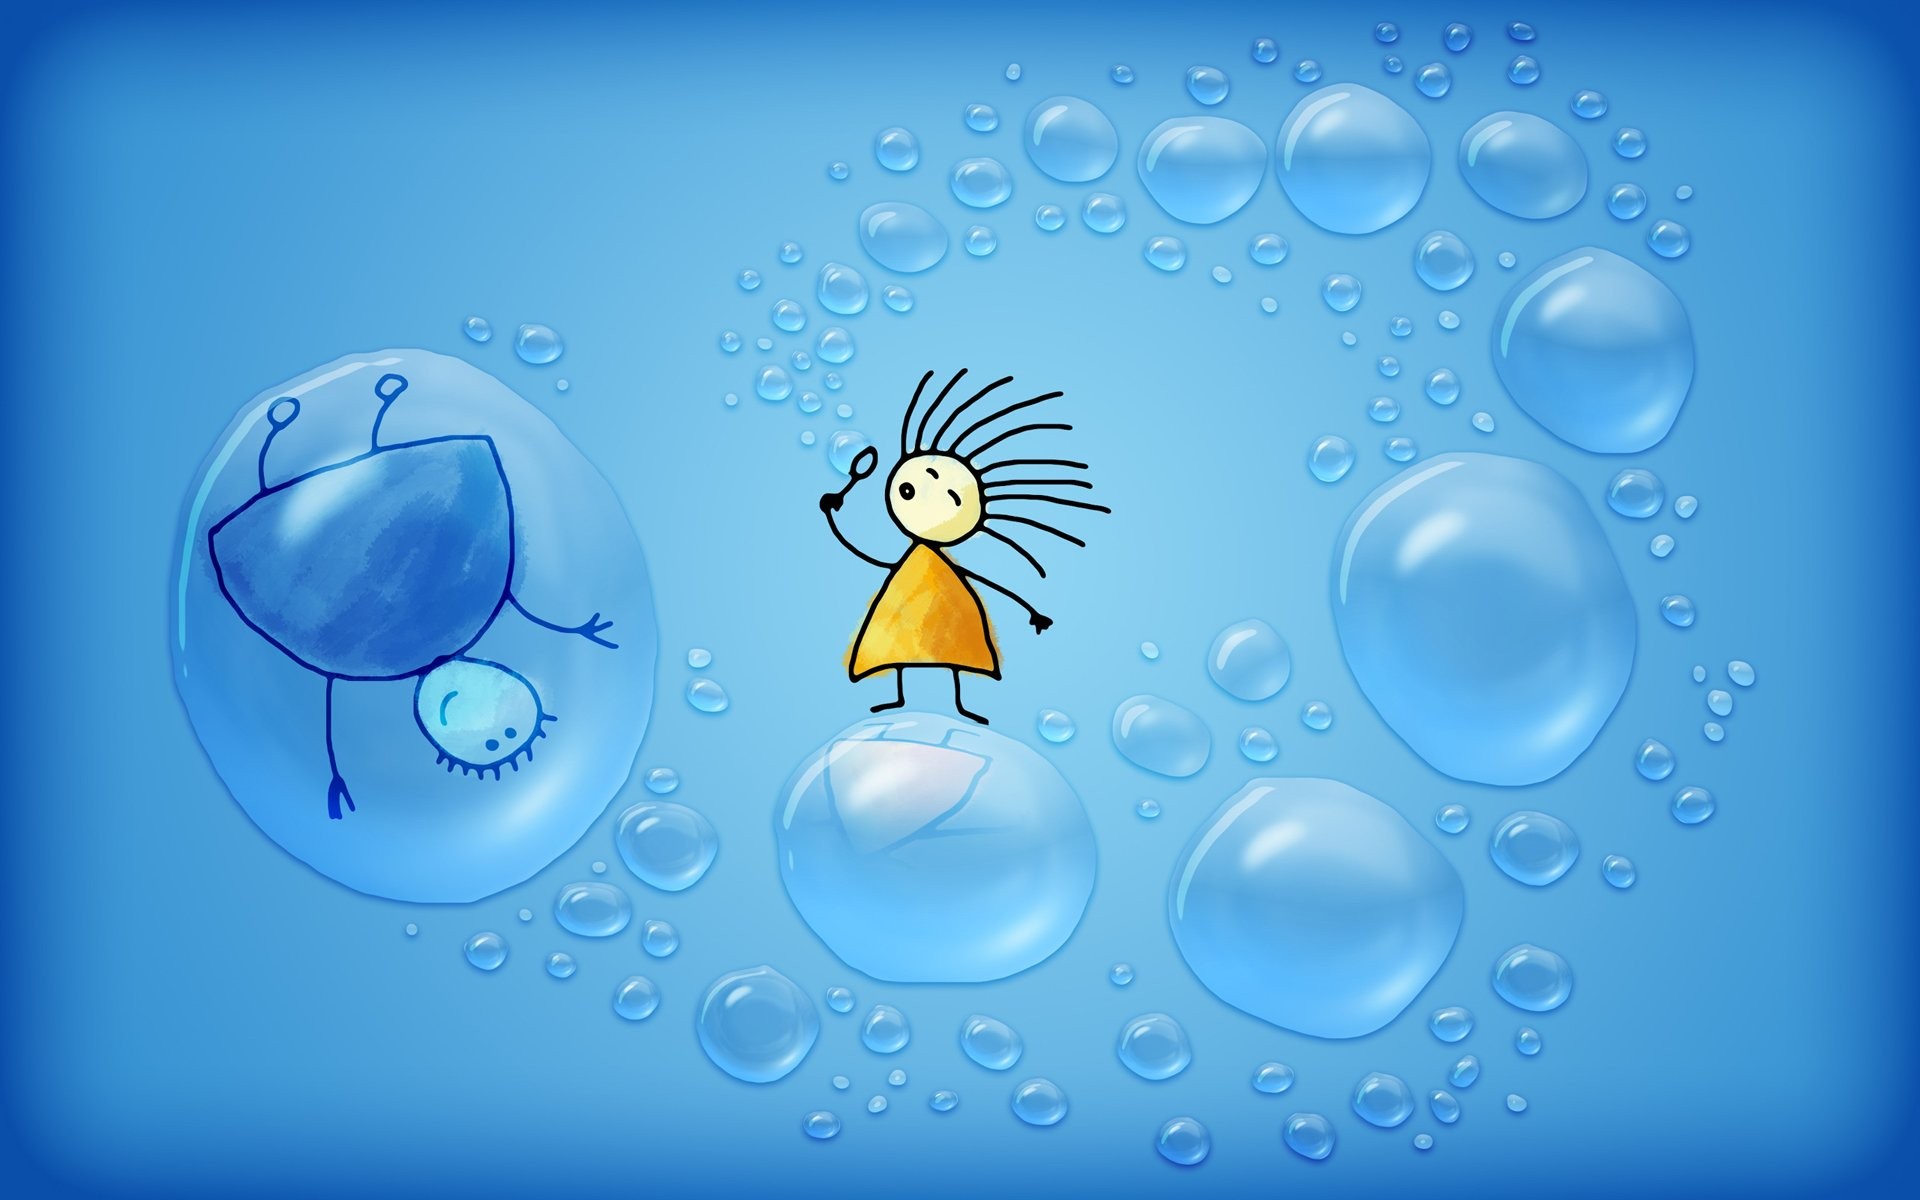 New Animated Desktop Wallpapers Animated Background Image Cool Cliparts Co